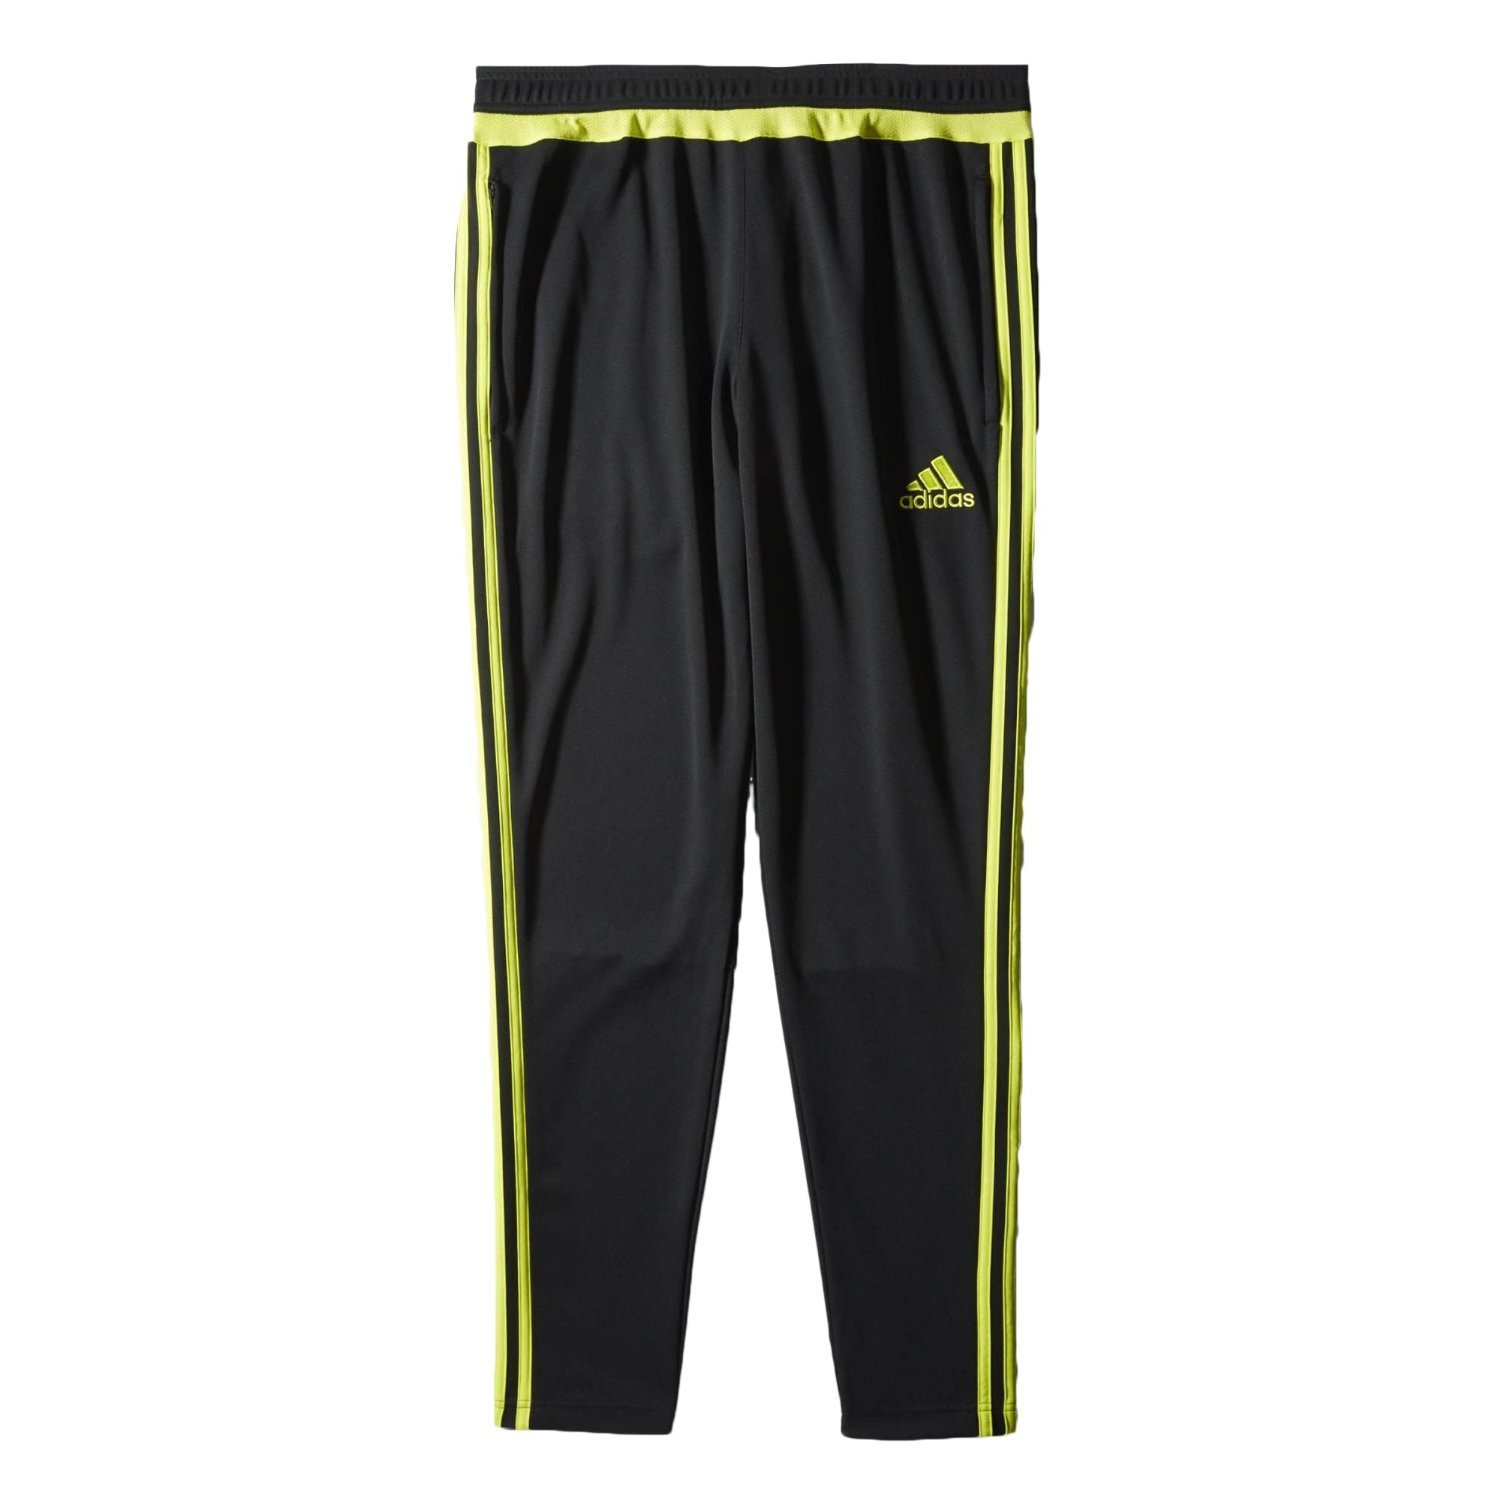 Adidas Men 's Tiro 15トレーニングパンツ B00LOU3Y30 X-Small|Black/Semi Solar Yellow Black/Semi Solar Yellow X-Small